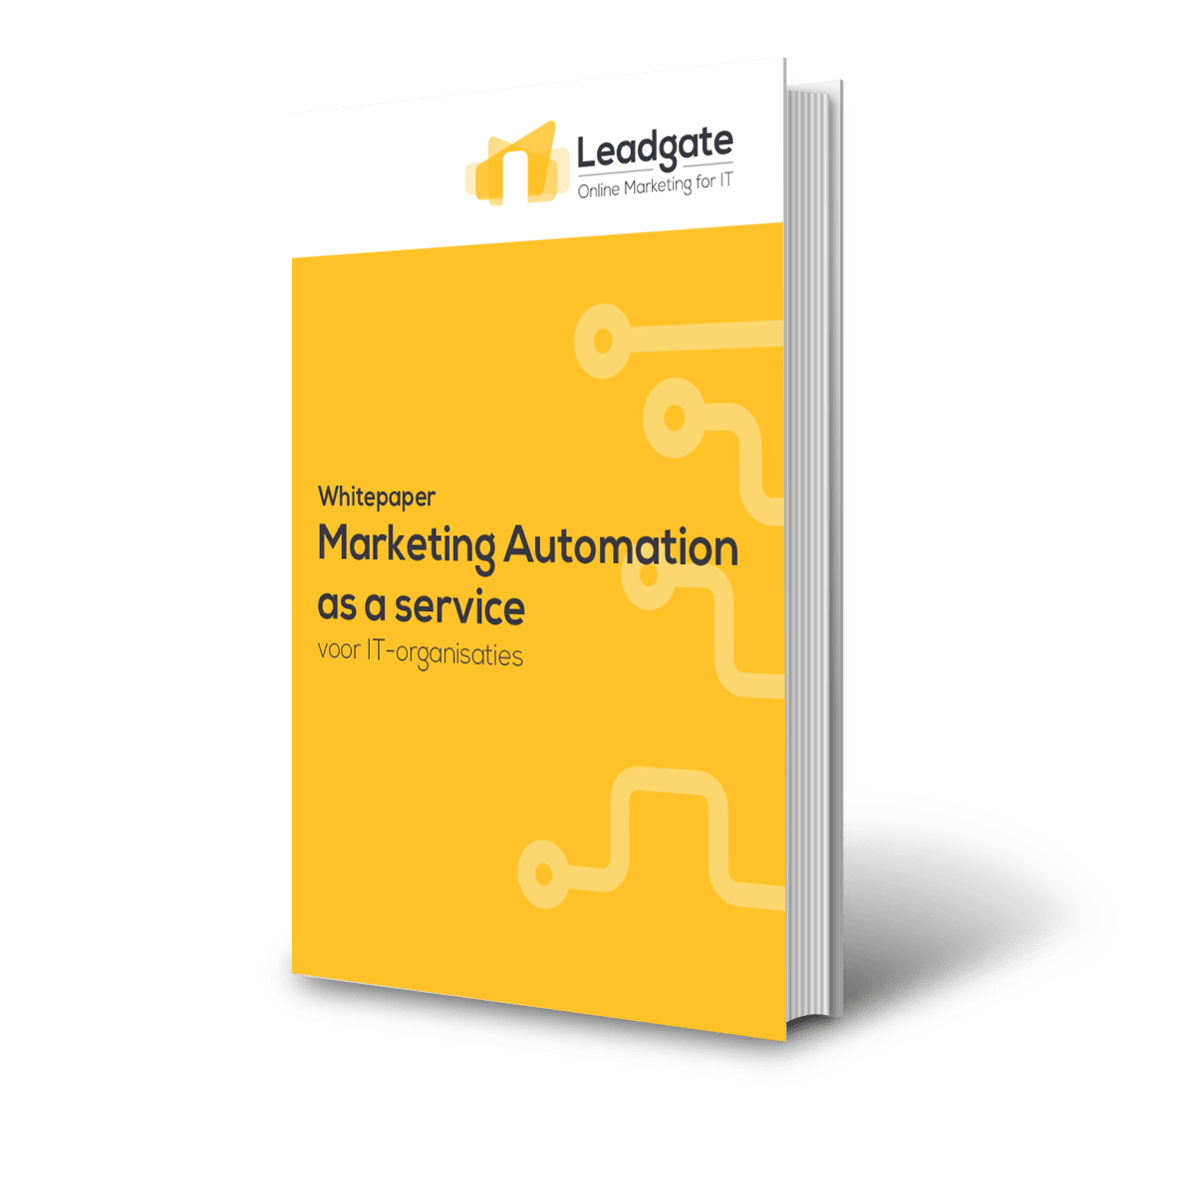 Whitepaper Marketing Automation as a Service